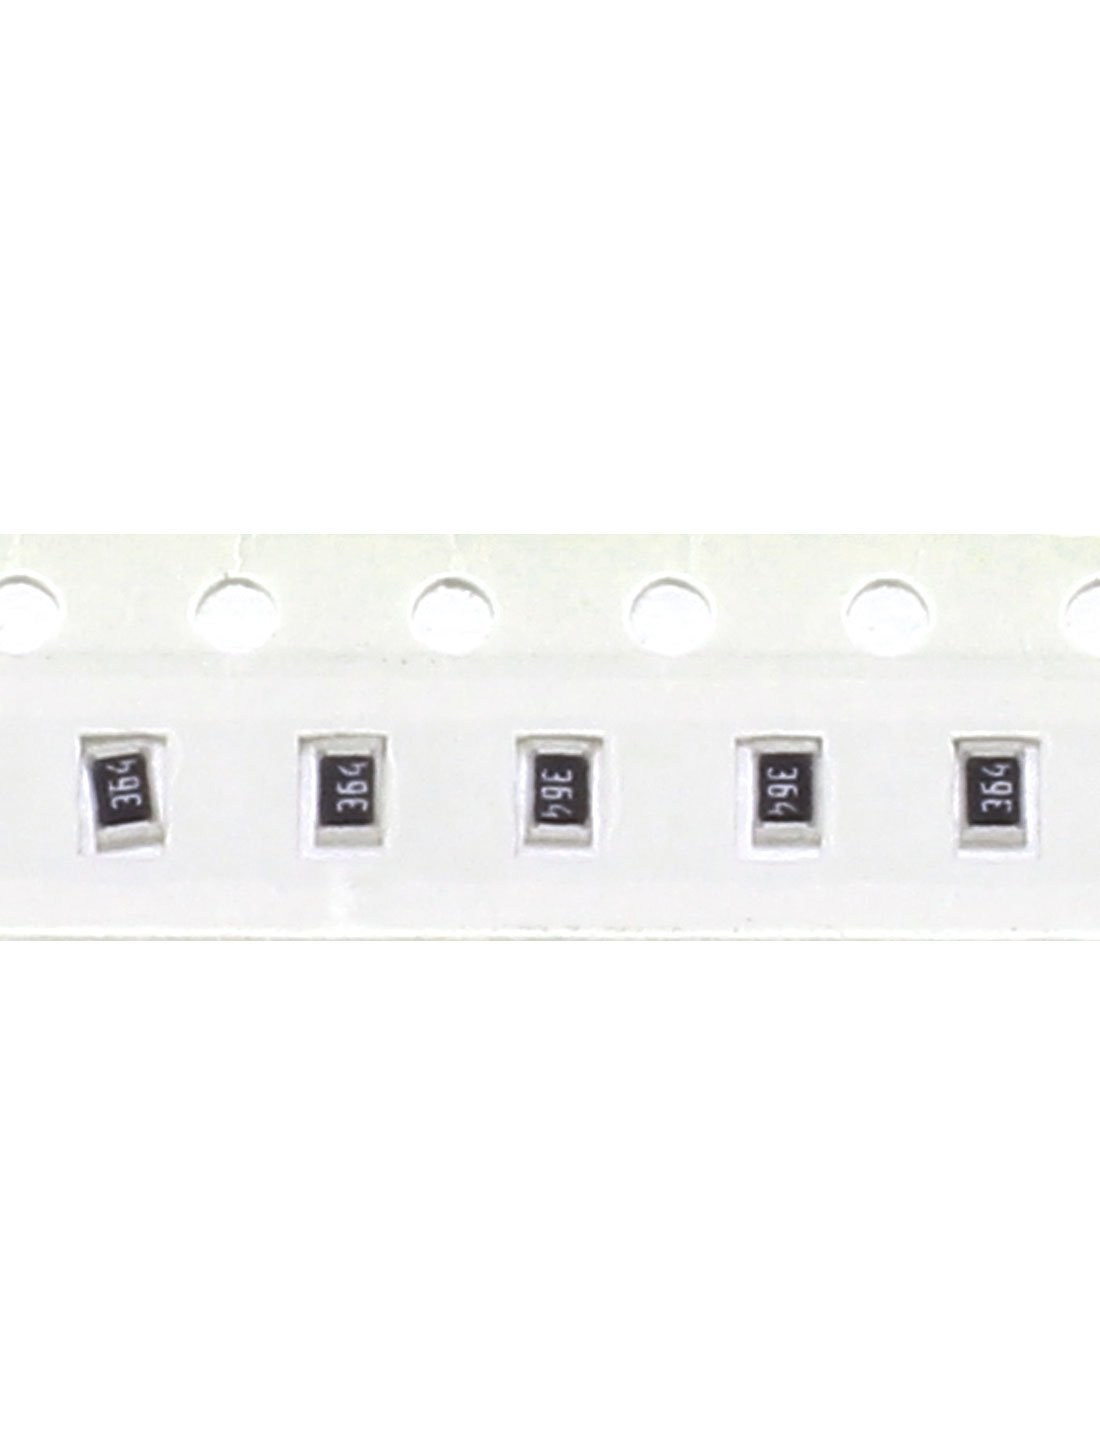 LED SMD 0805 in 8 Farben